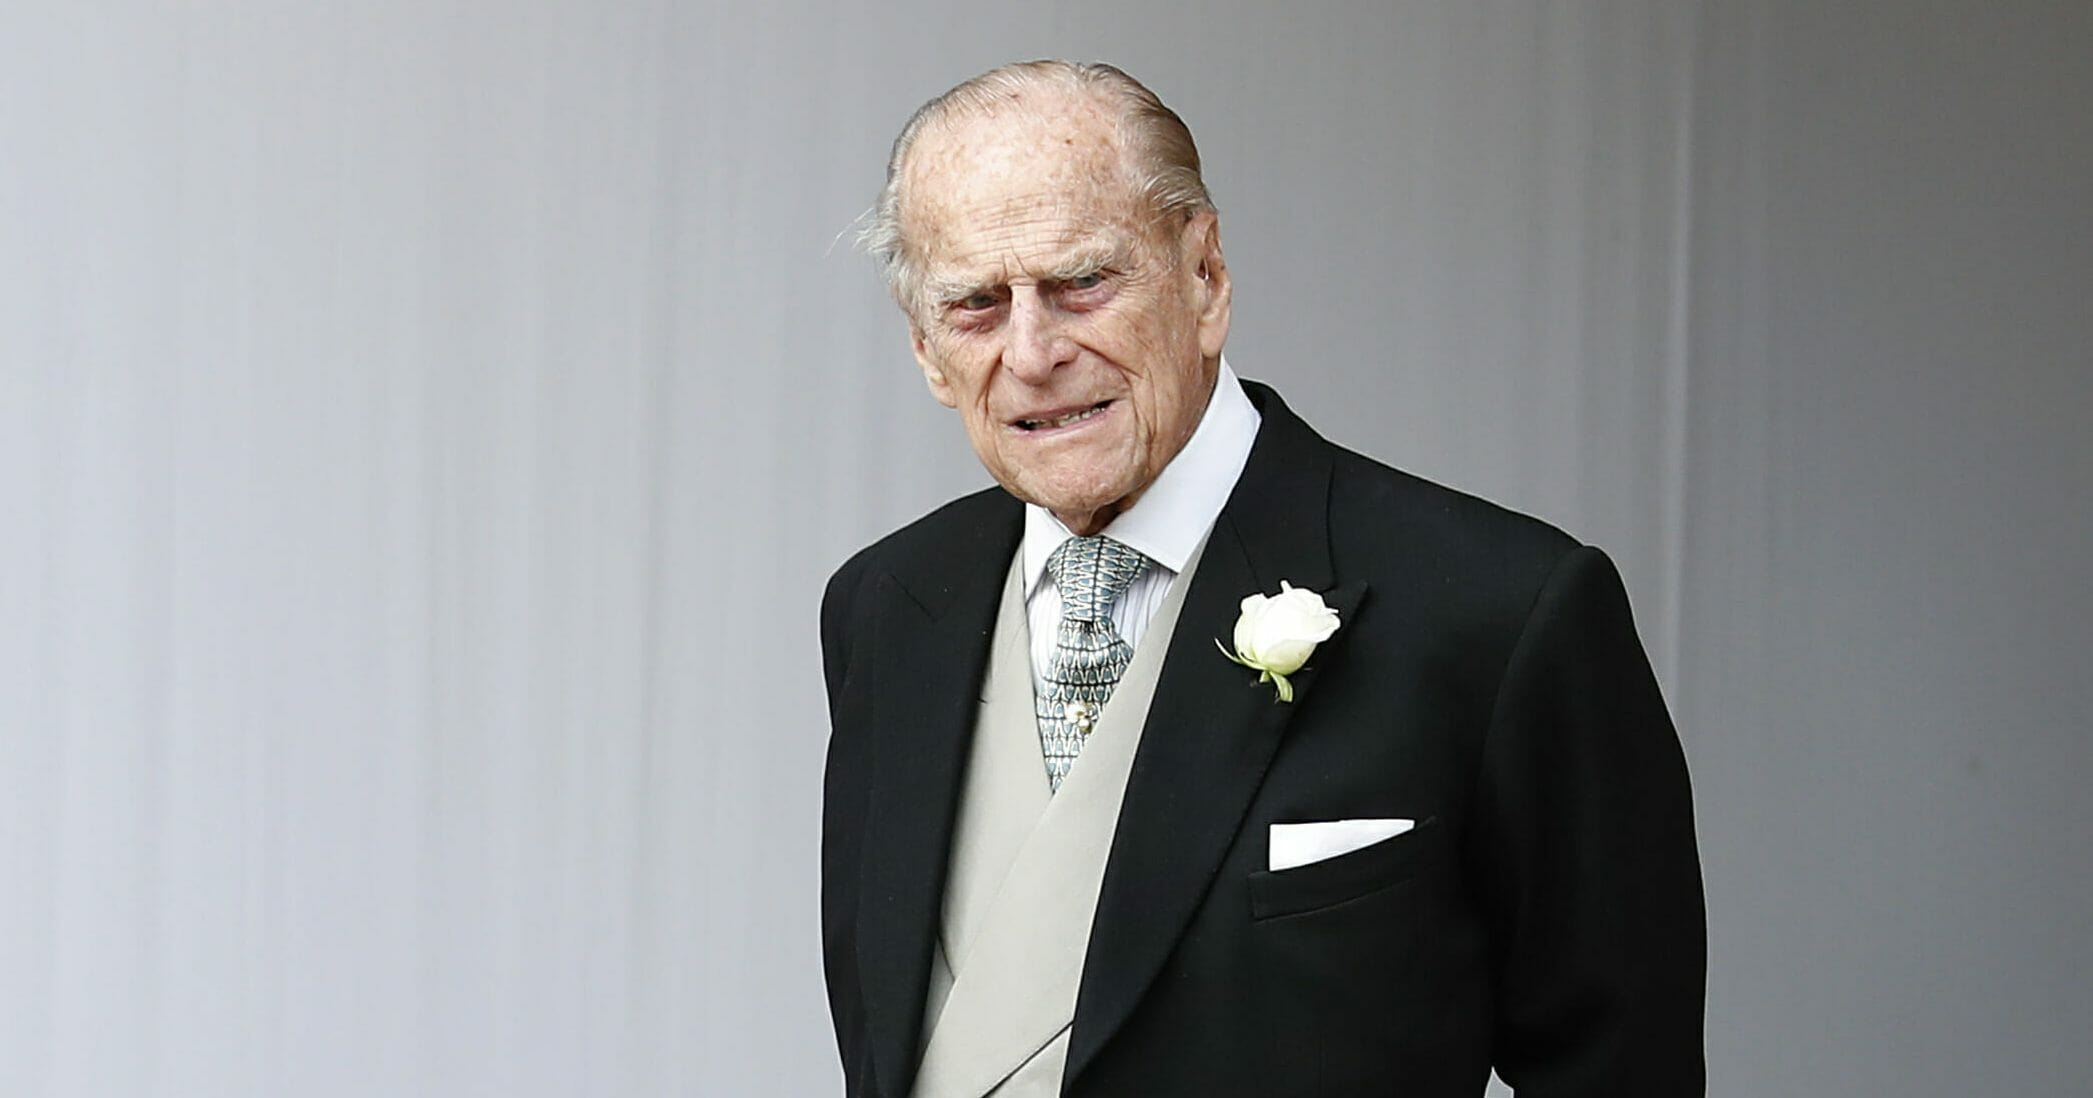 Britain's Prince Philip waits for the bridal procession following the wedding of Princess Eugenie of York and Jack Brooksbank in St George's Chapel, Windsor Castle, near London on Oct. 12, 2018.